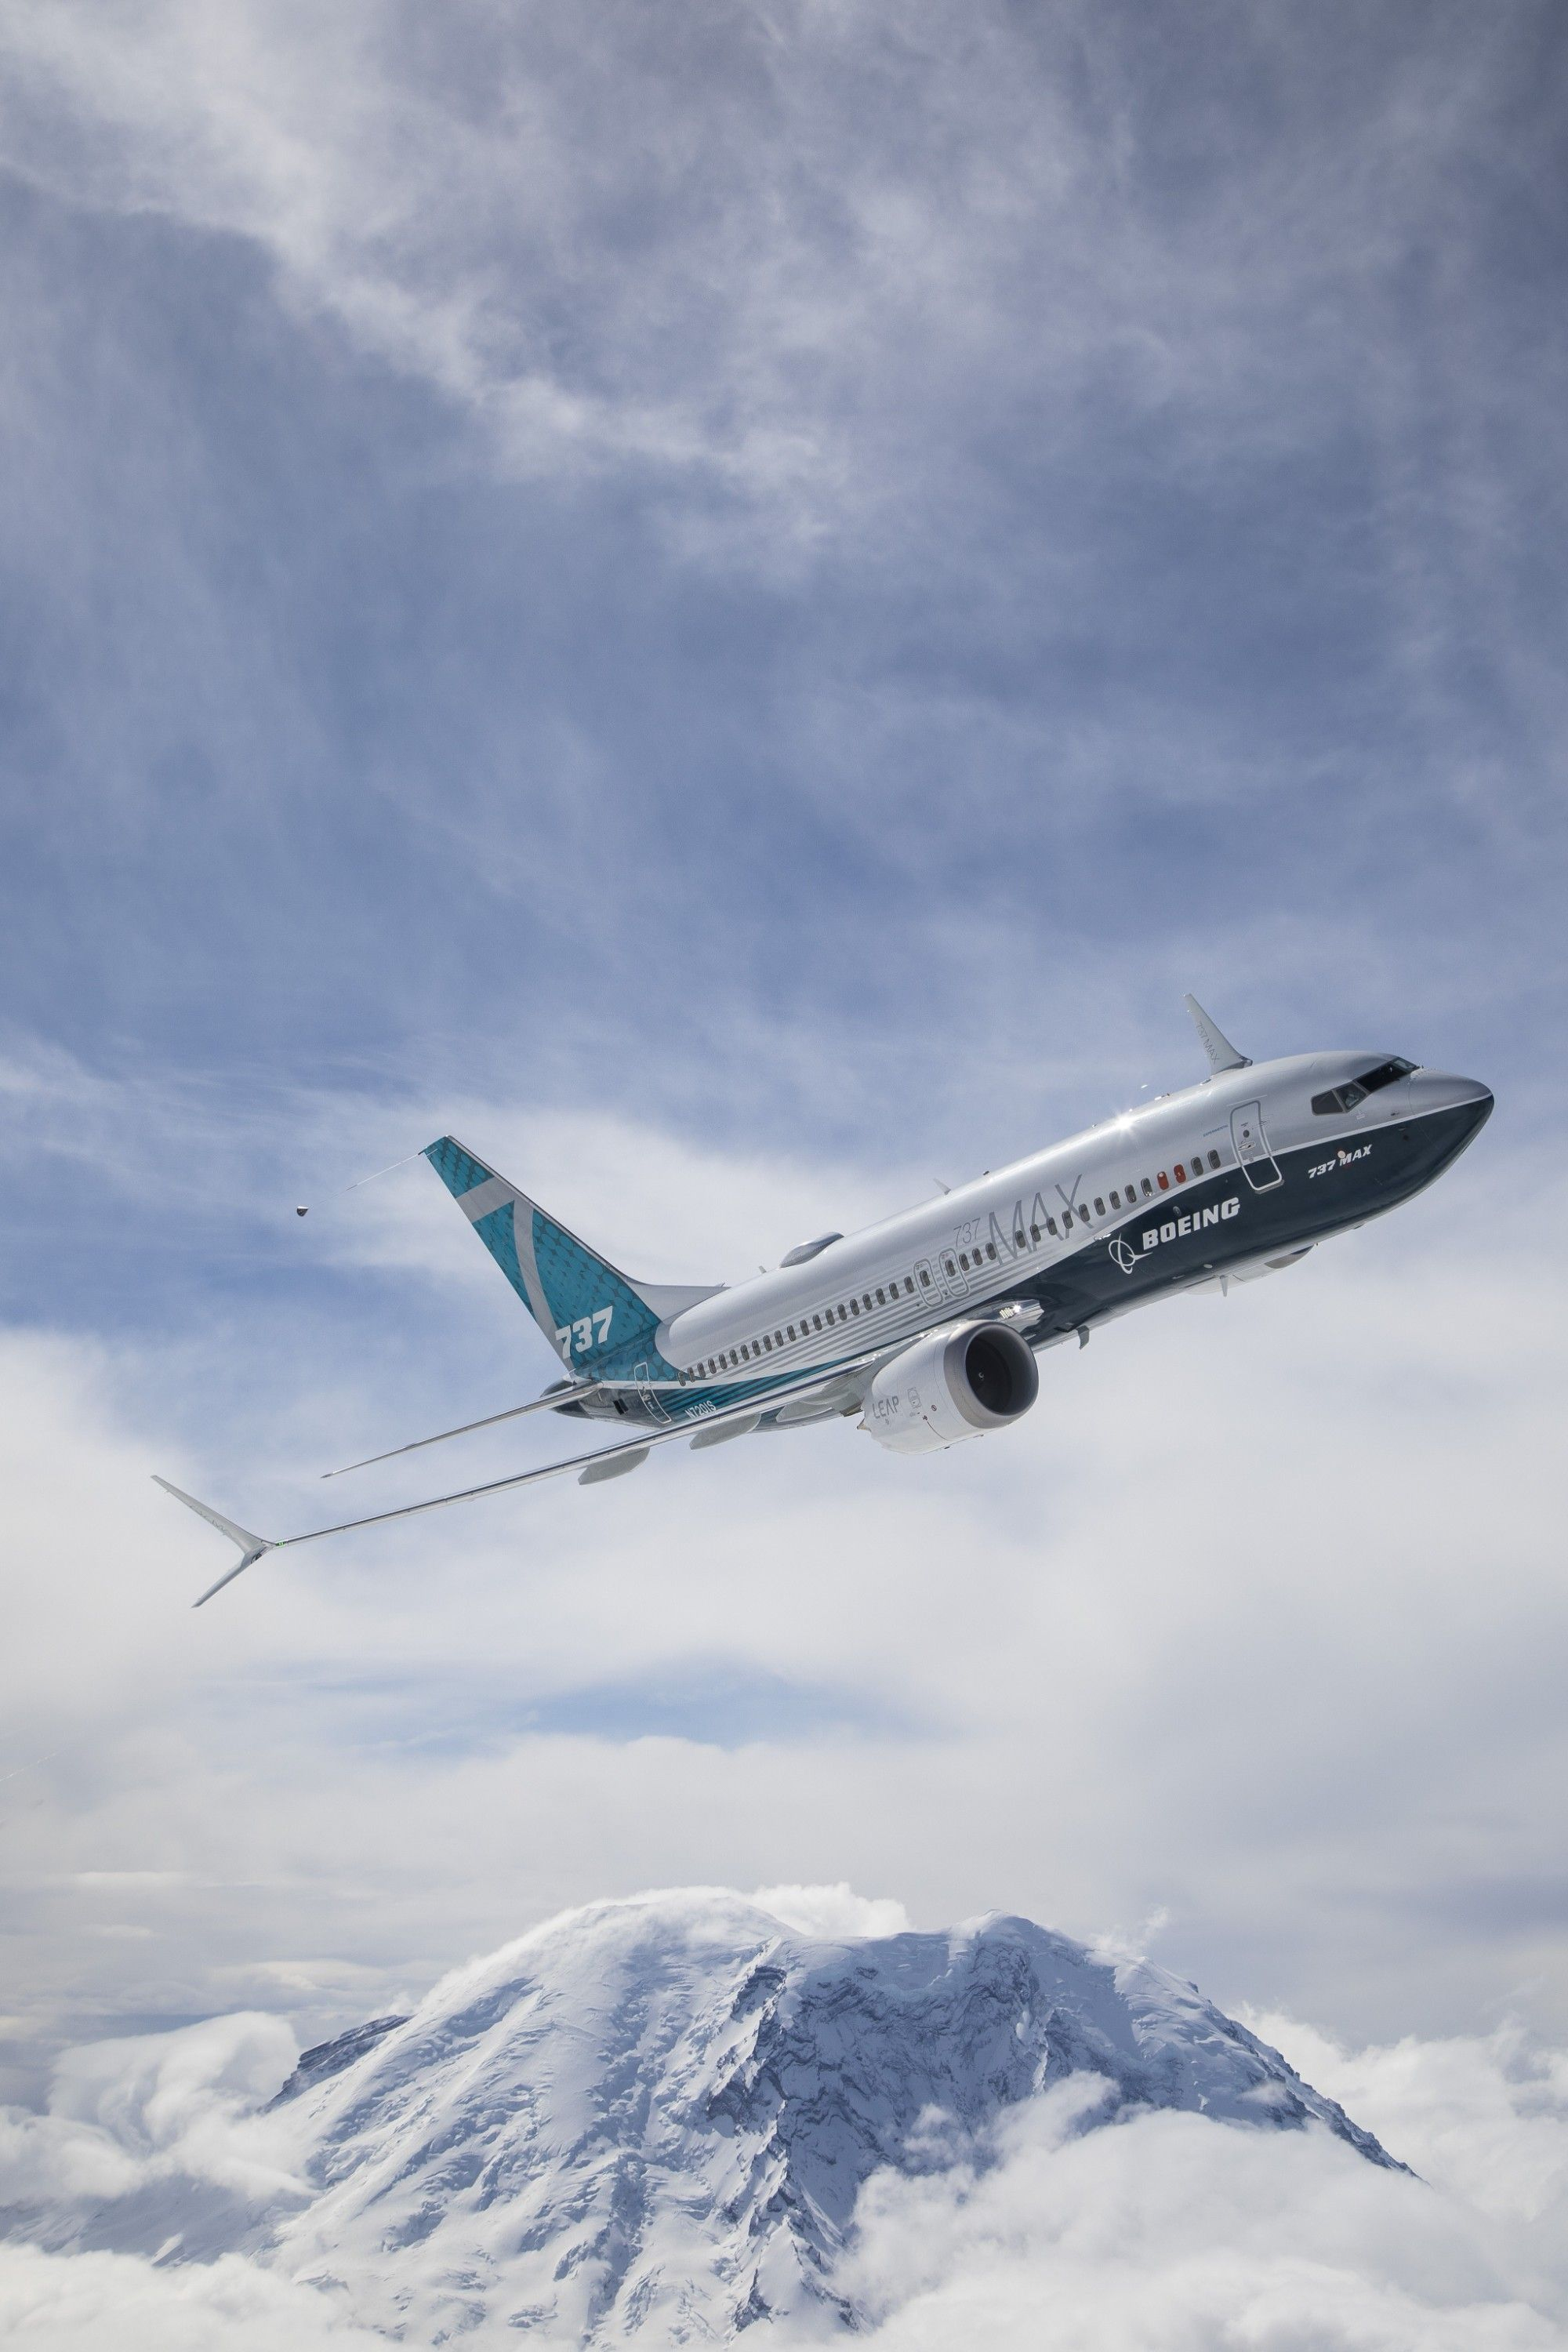 Should You Avoid Boeing Planes After The 737 MAX Crash